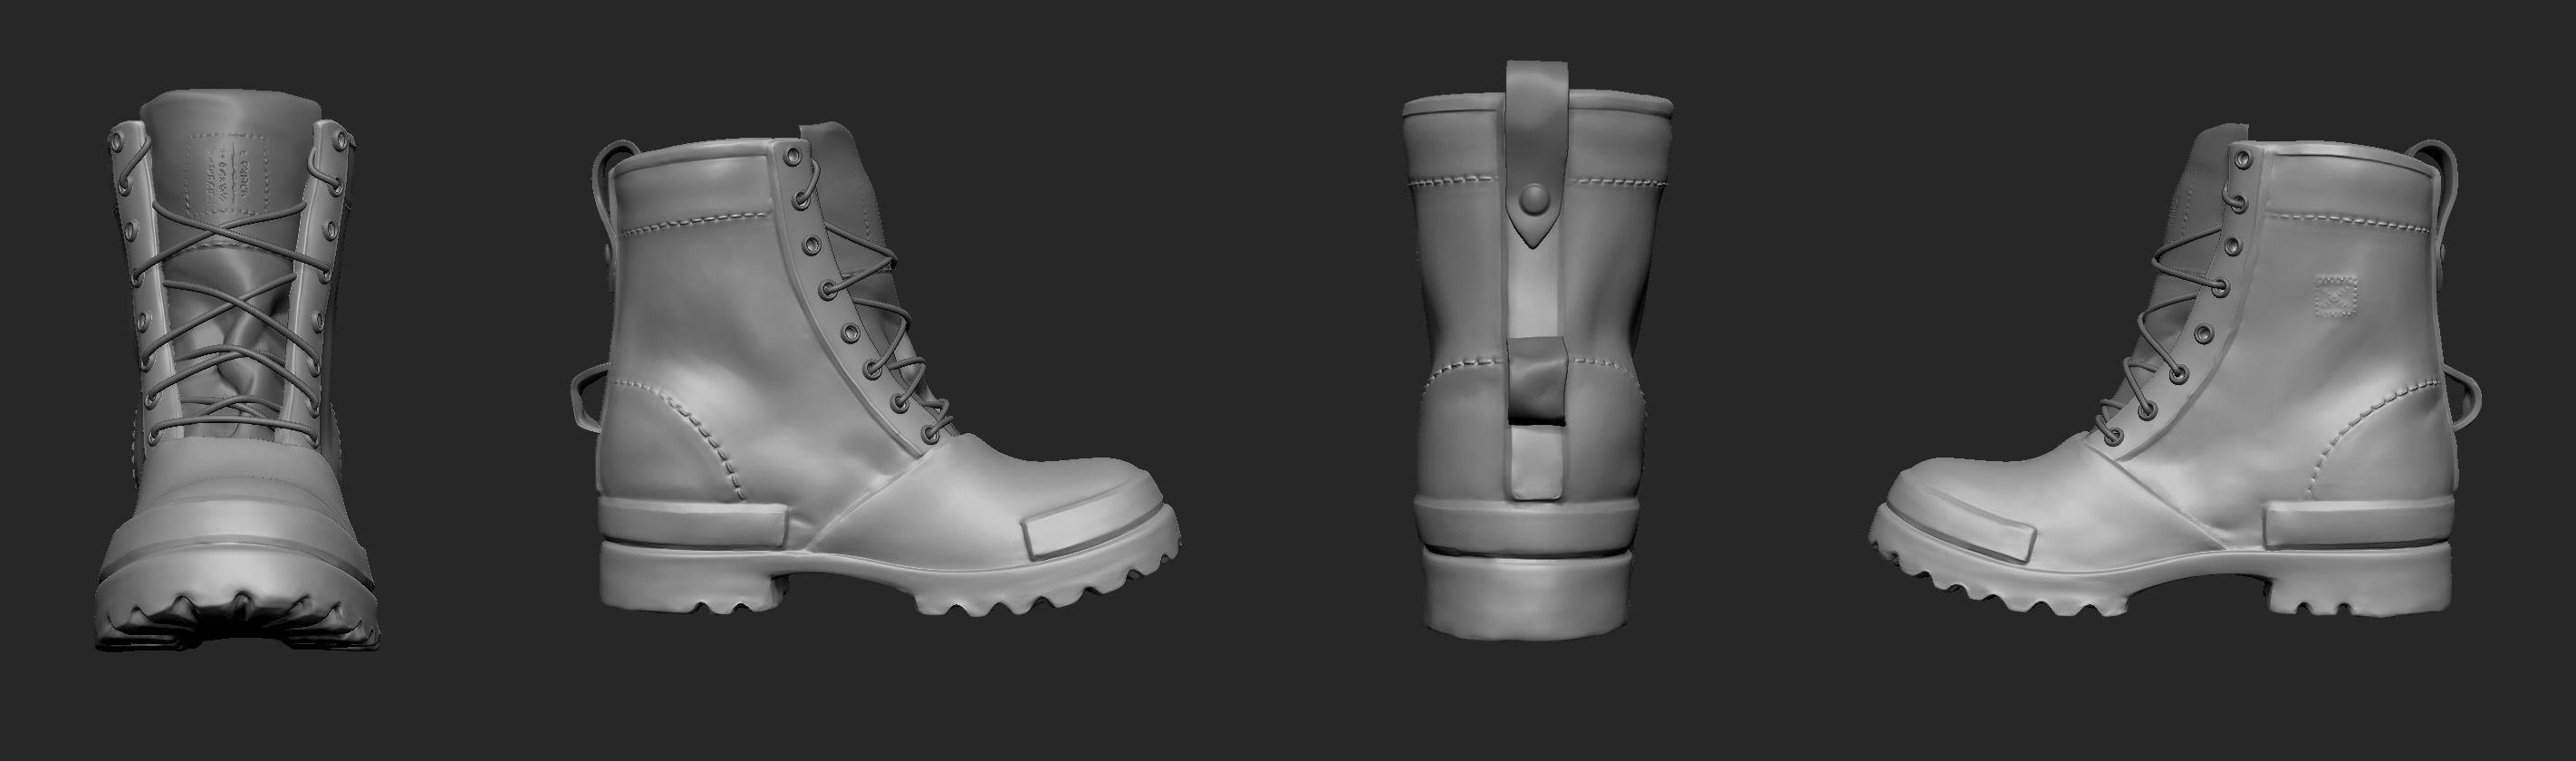 Boots 3d model ztl for New model boot